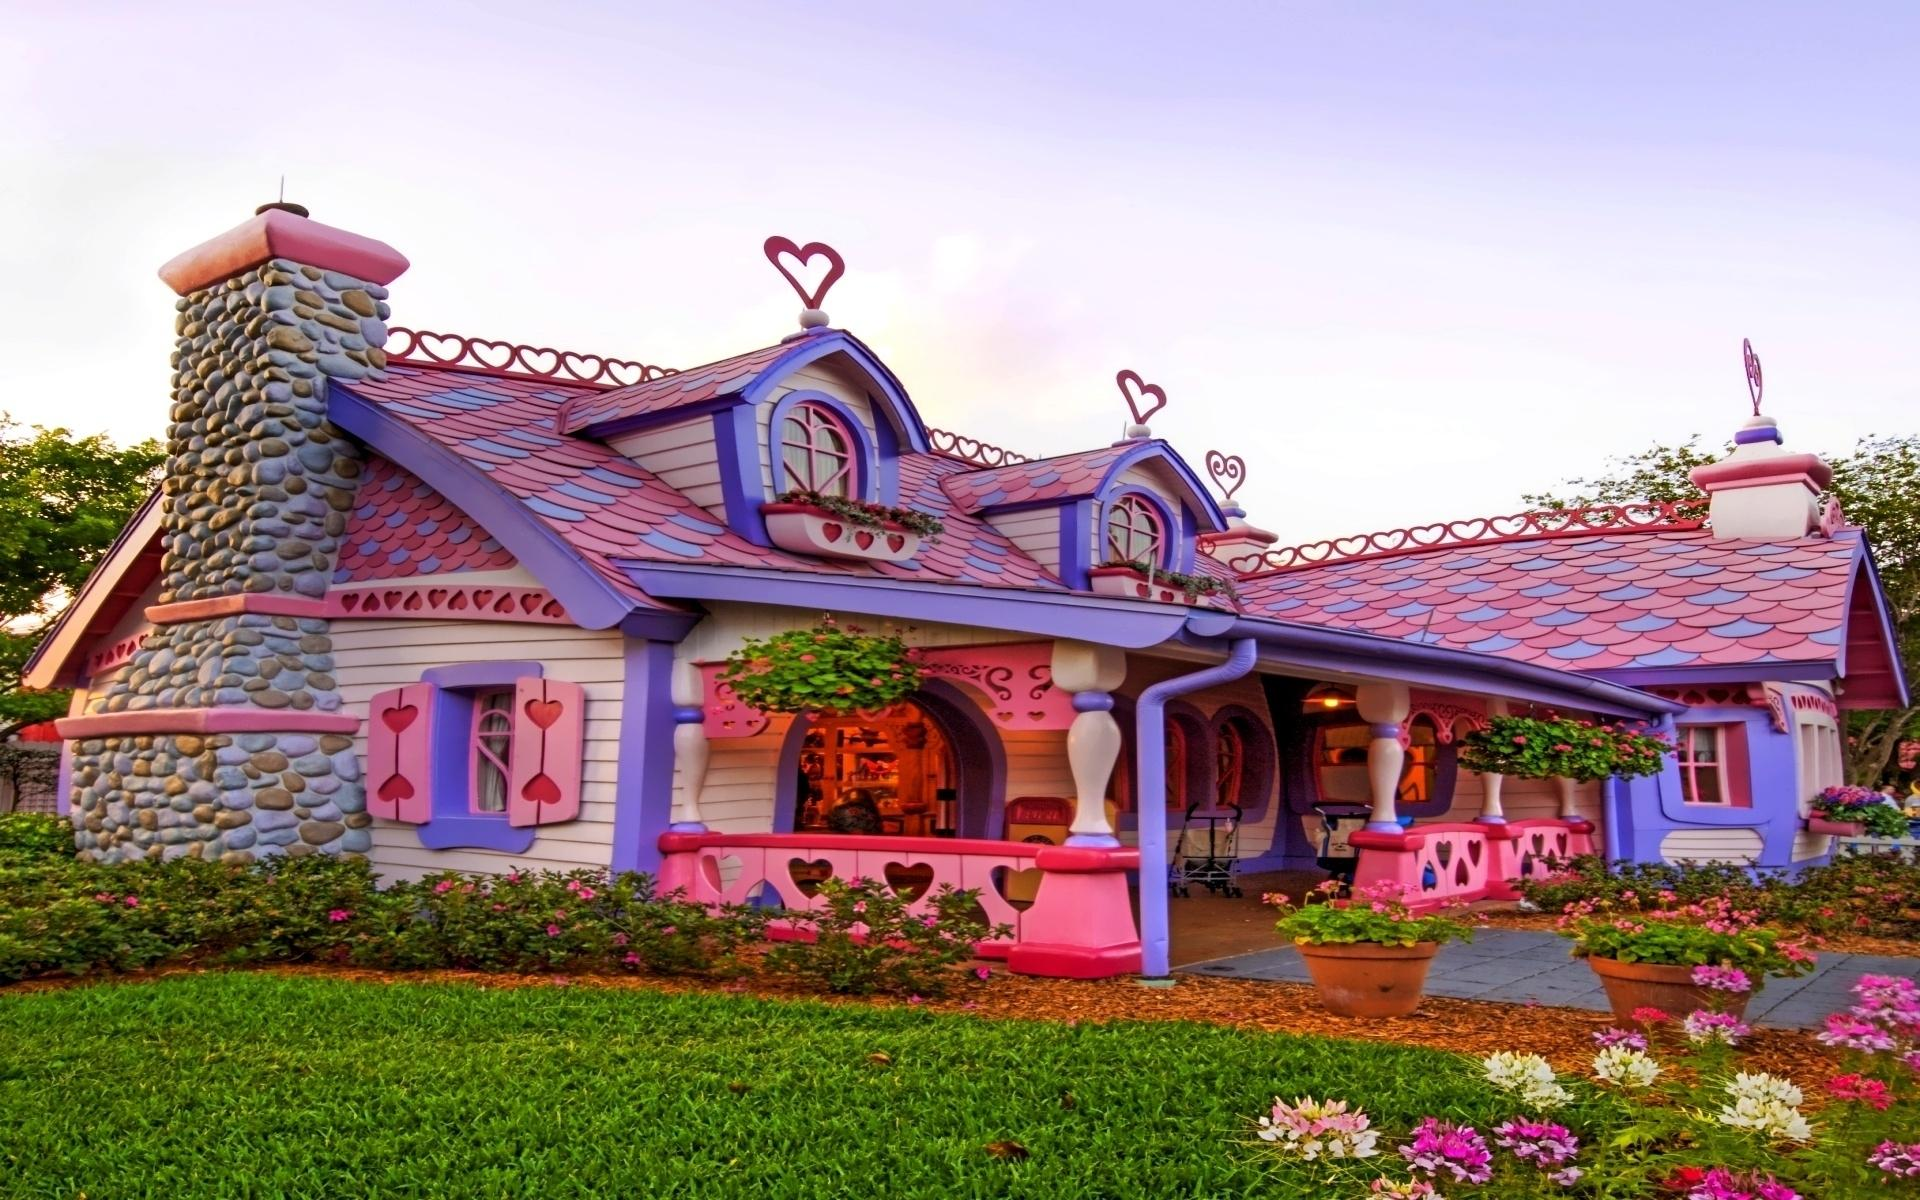 House wallpapers best wallpapers for Wallpaper home cartoon